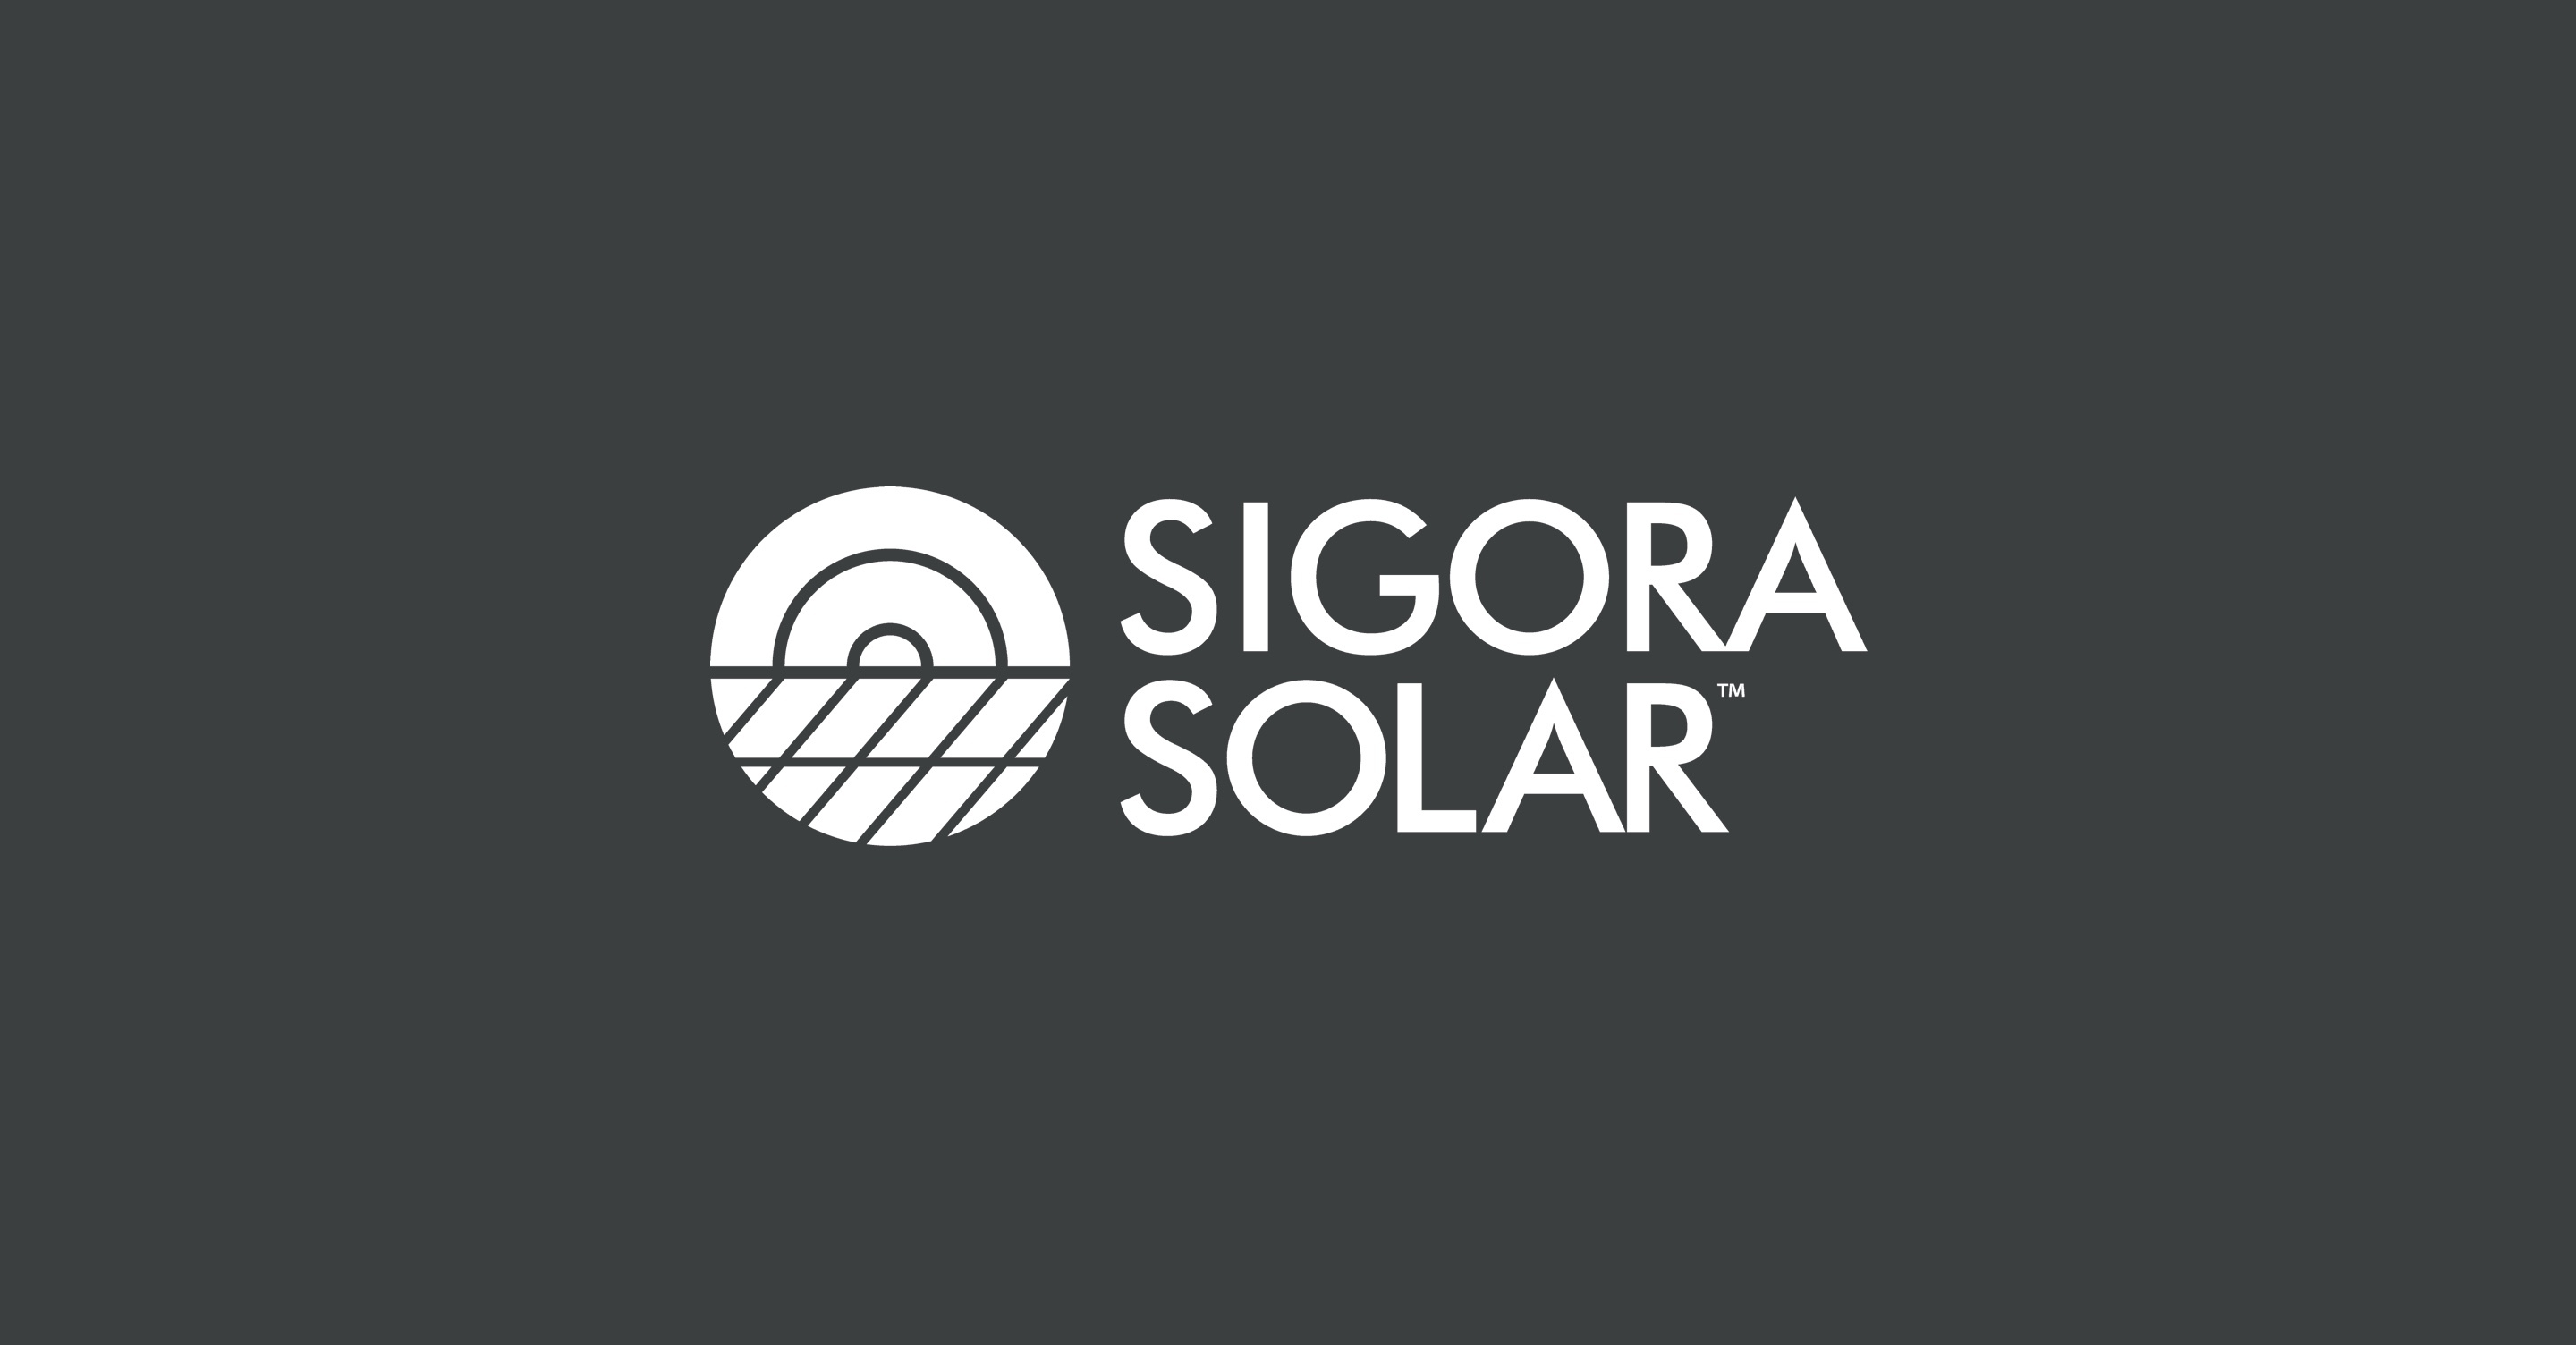 Sigora Solar Uses Copper to Bridge Sales and Operations